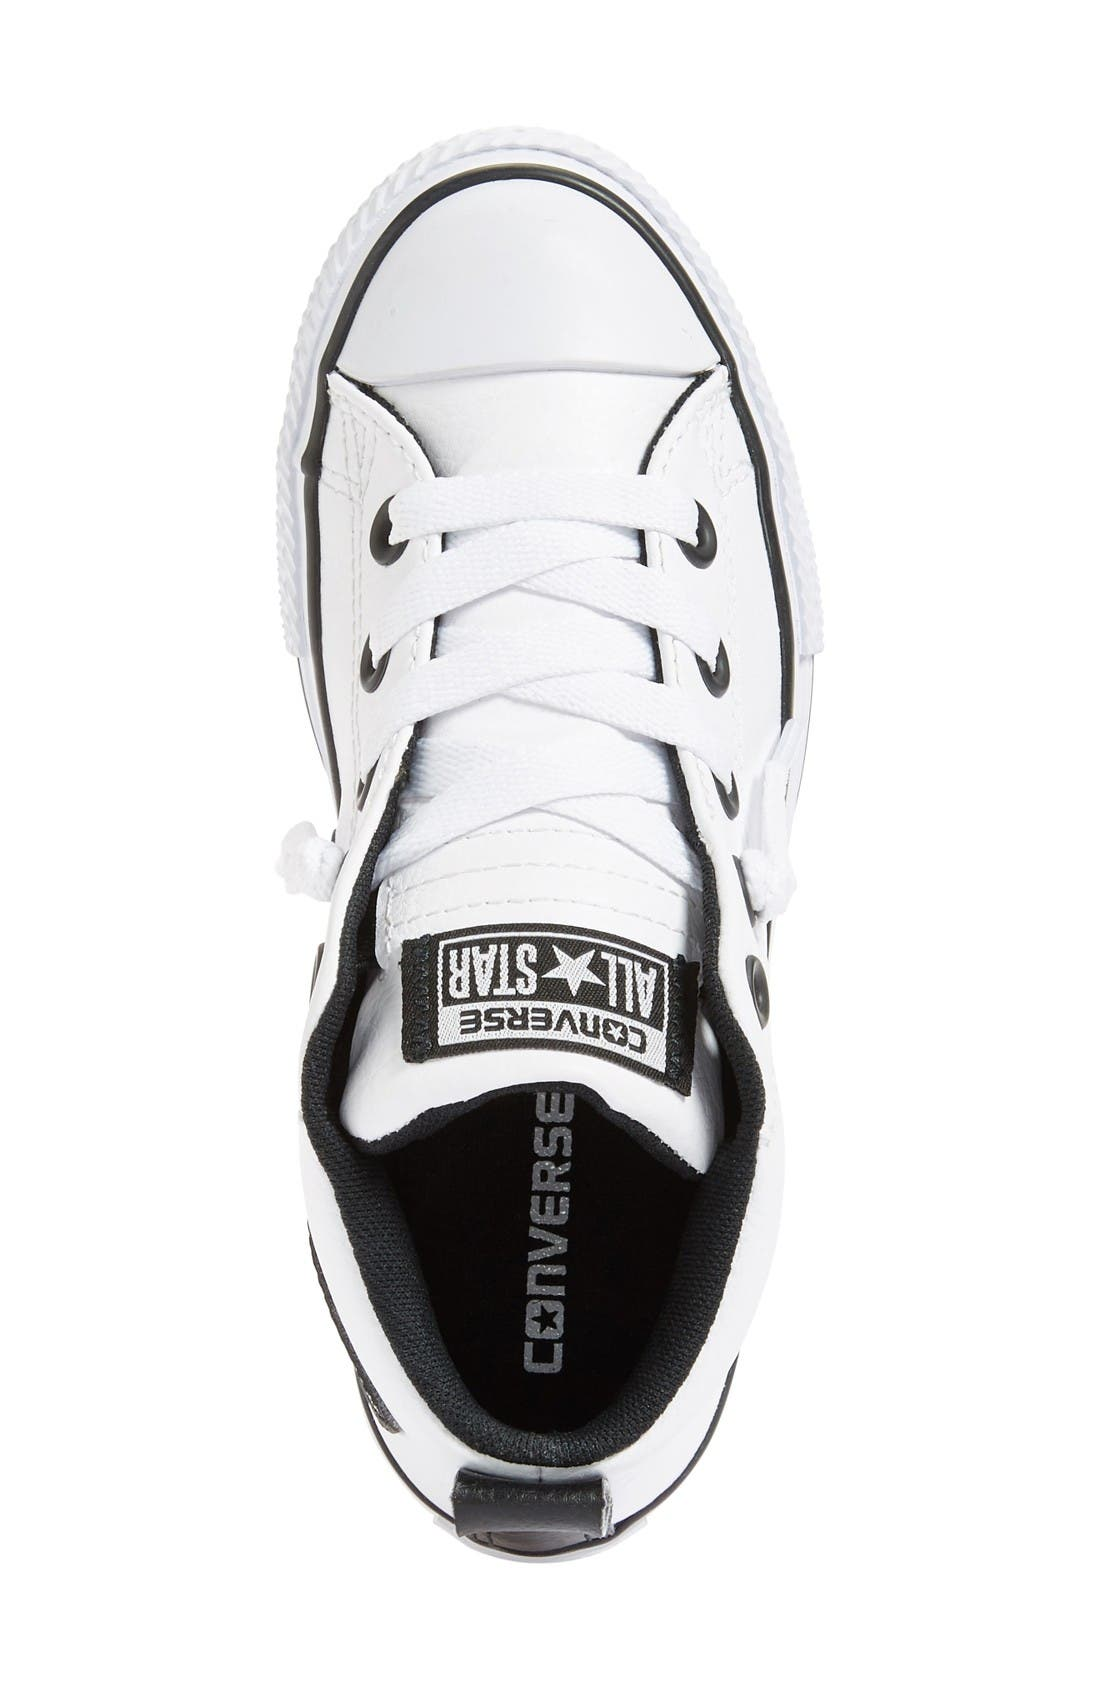 Chuck Taylor<sup>®</sup> All Star<sup>®</sup> Mid High Sneaker,                             Alternate thumbnail 3, color,                             White/ Black